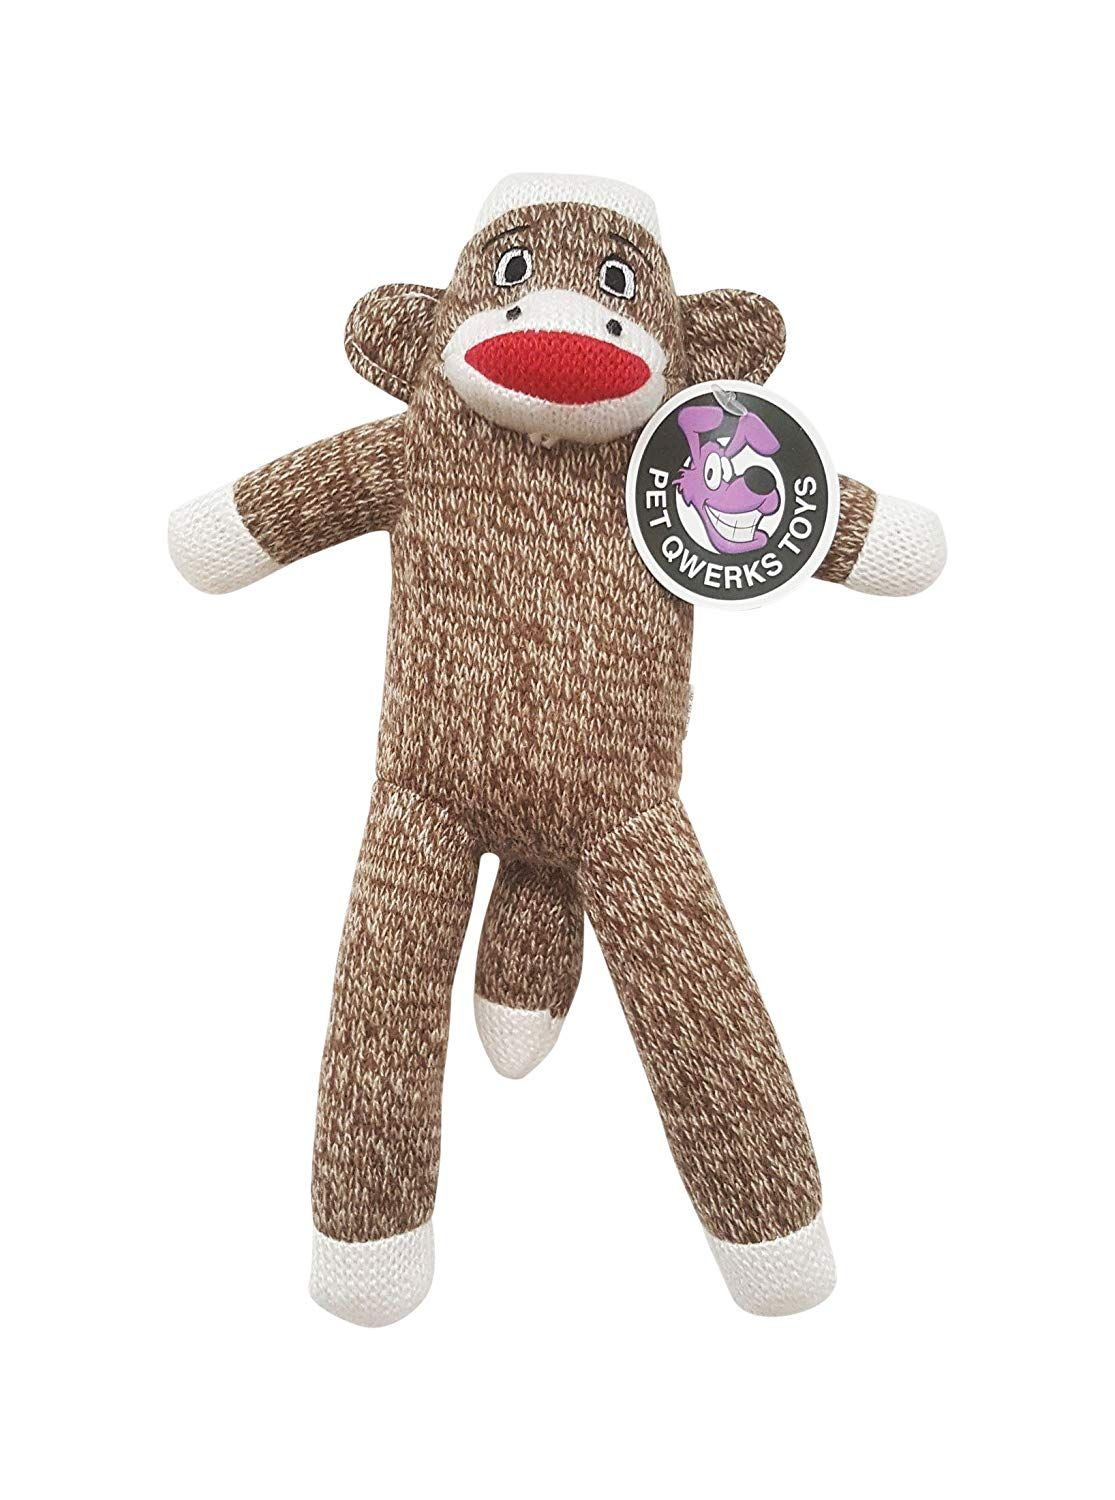 Pet Qwerks Sock Monkey Dog Toy Very Kind Of Your Presence To